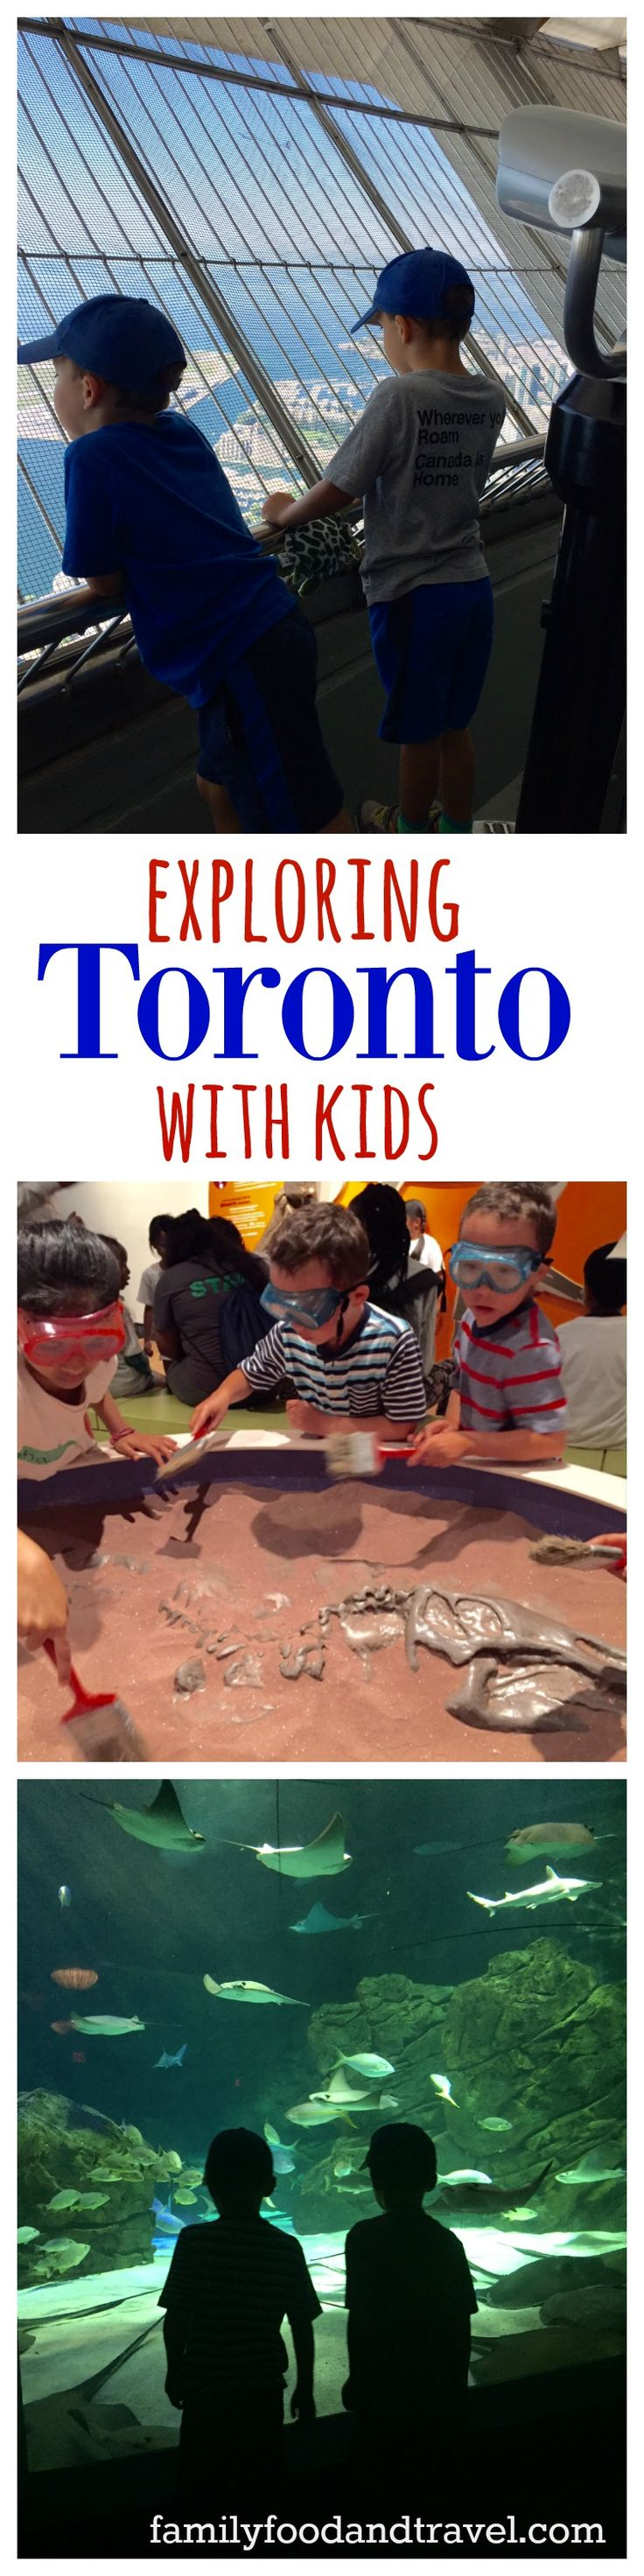 Visiting Toronto with Kids - What to Do and Where to Go. Toronto is the perfect city for family travel with museums, attractions, a world-class aquarium and trains too! There is something for everyone in this beautiful city.